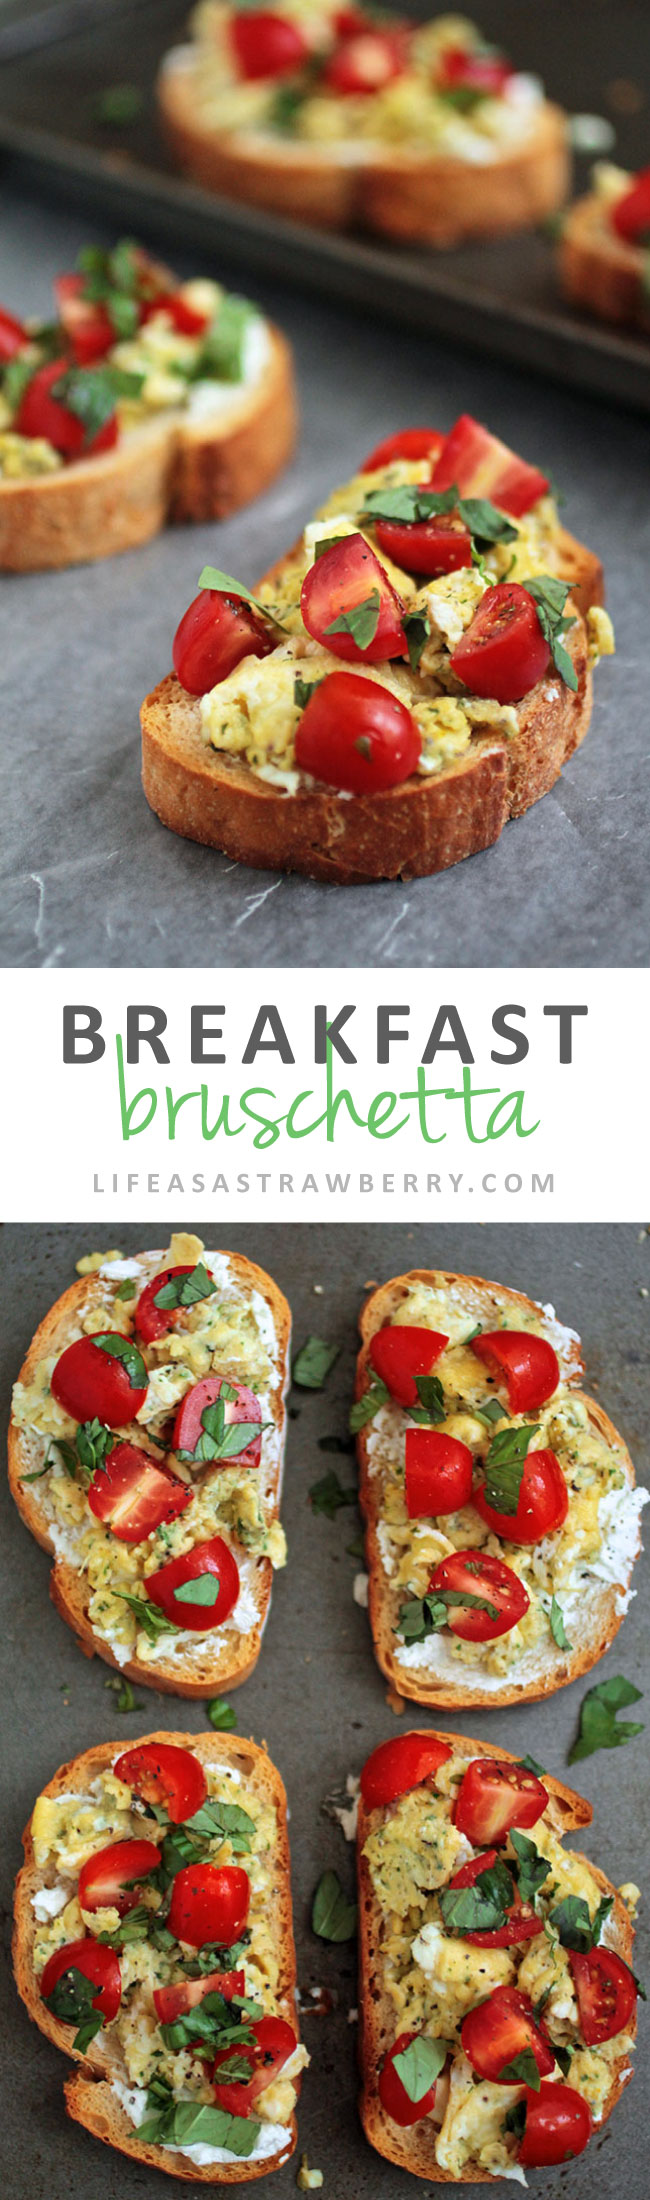 Breakfast Bruschetta | Shake up your morning routine with this breakfast bruschetta recipe - fluffy scrambled eggs, fresh tomatoes and basil atop crusty french bread make for an easy breakfast recipe that's sure to be a hit!